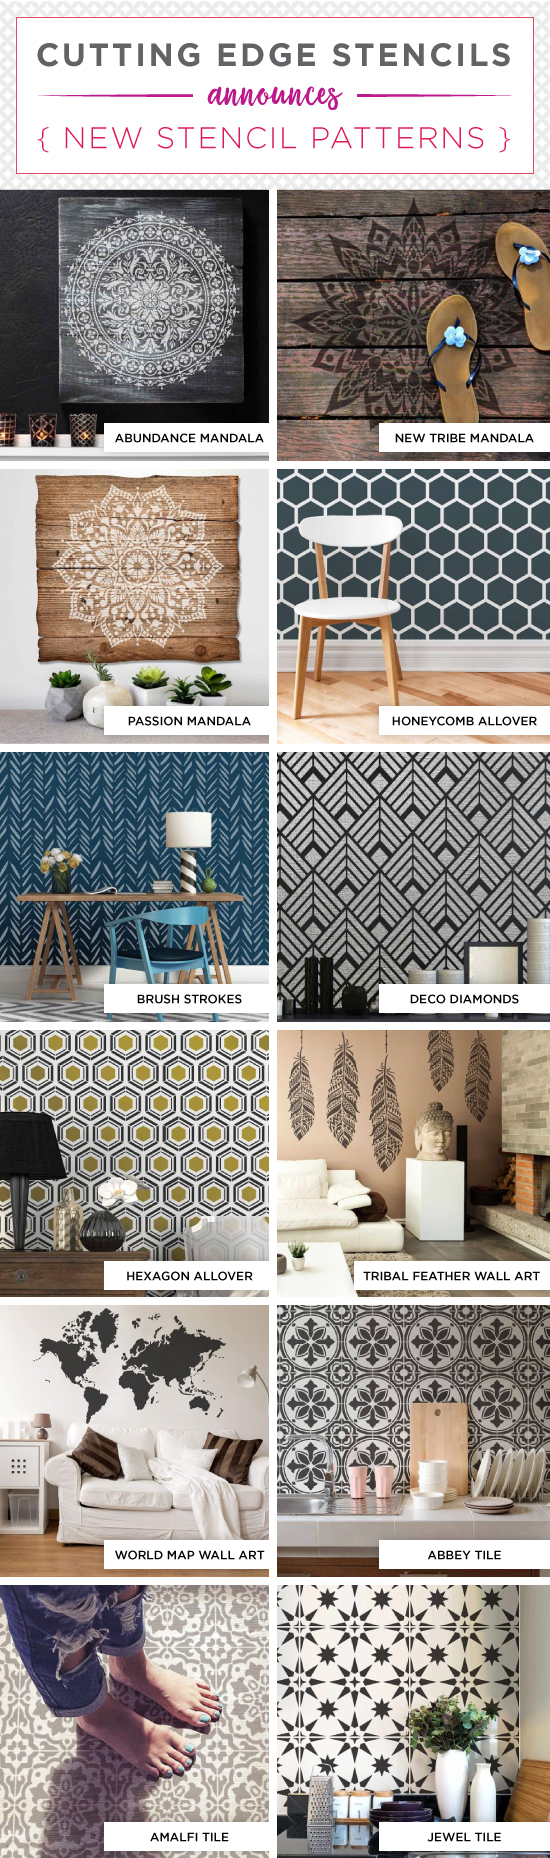 Cutting Edge Stencils shares a NEW collection of wall patterns that include Mandala designs, tile stencils, and geometrics. http://www.cuttingedgestencils.com/wall-stencils-stencil-designs.html